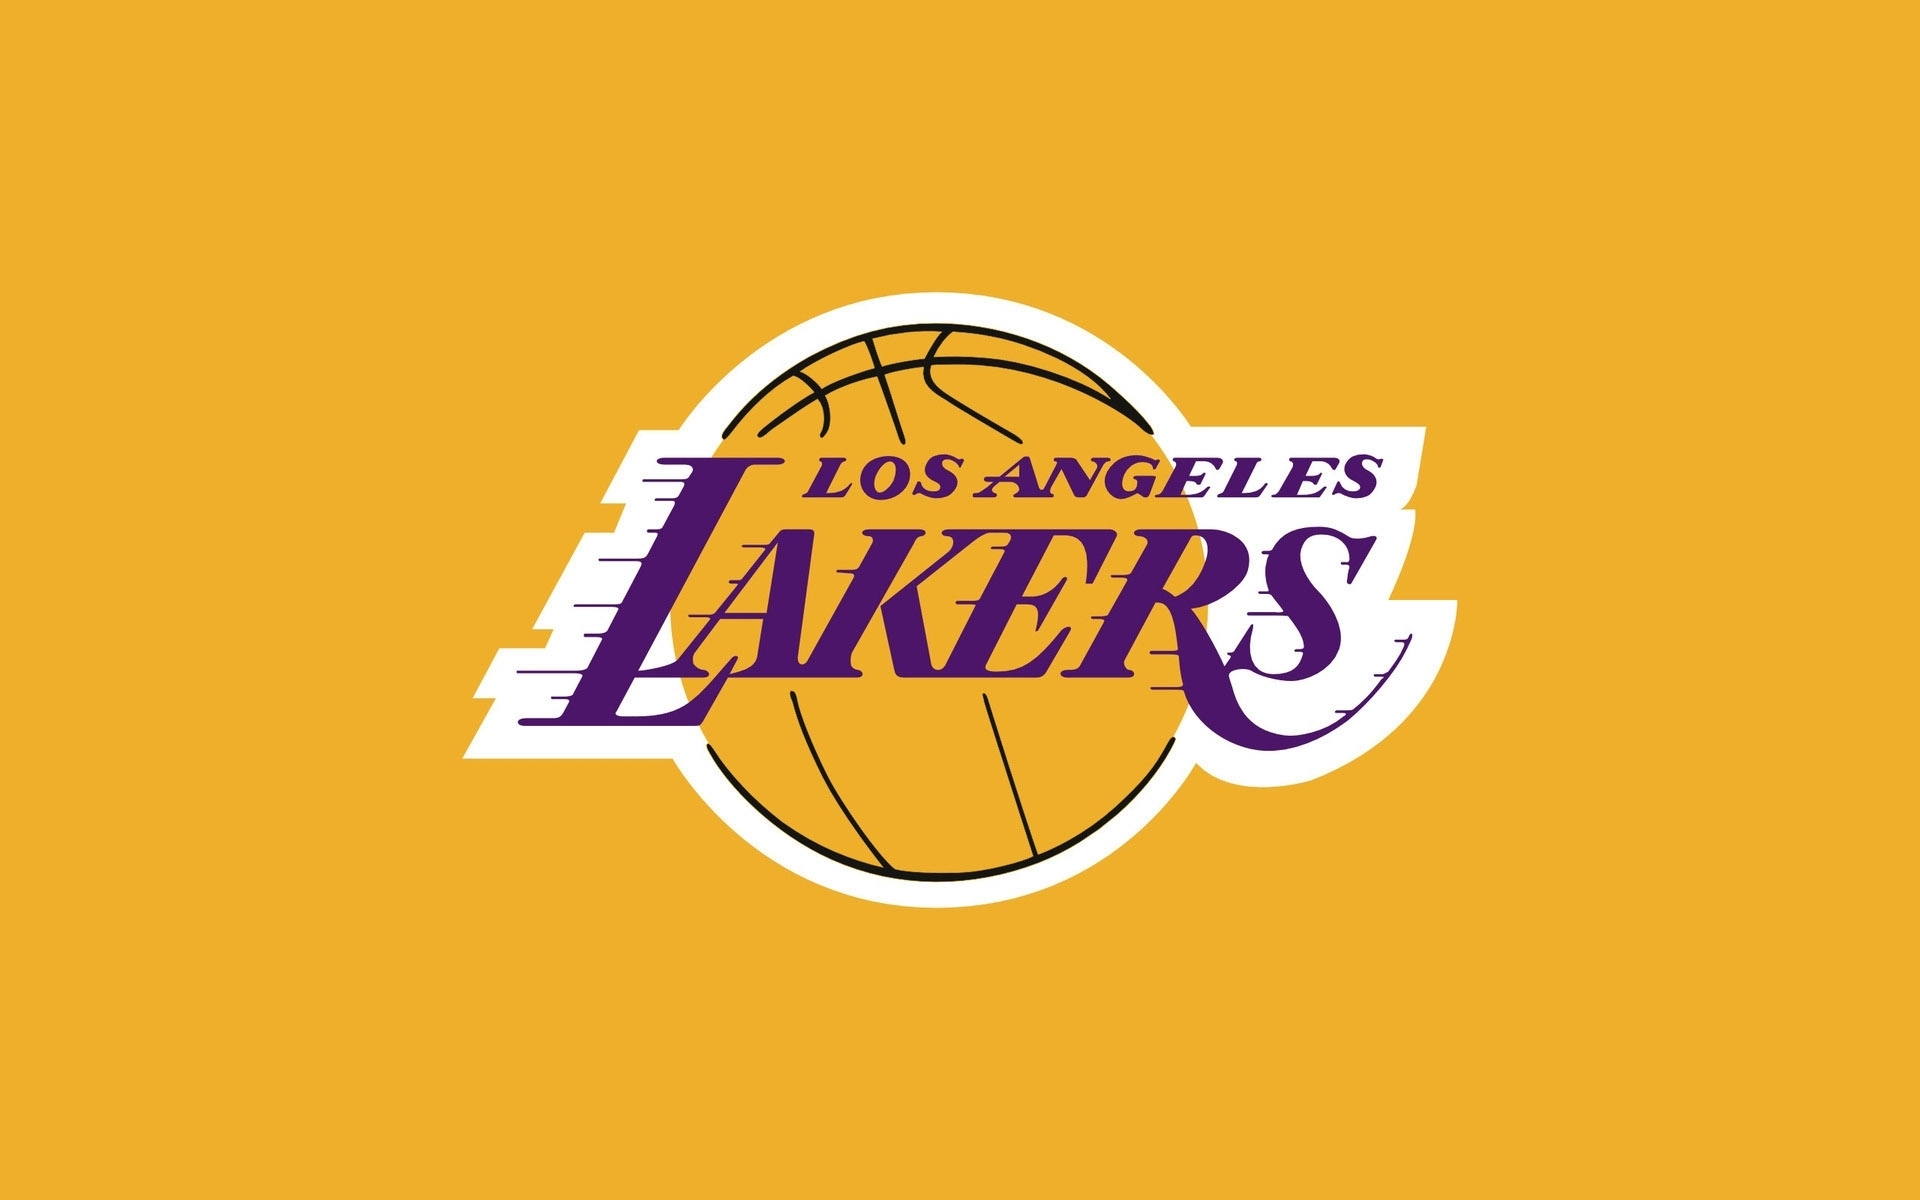 los angeles lakers images wallpapers los angeles lakers wallpaper